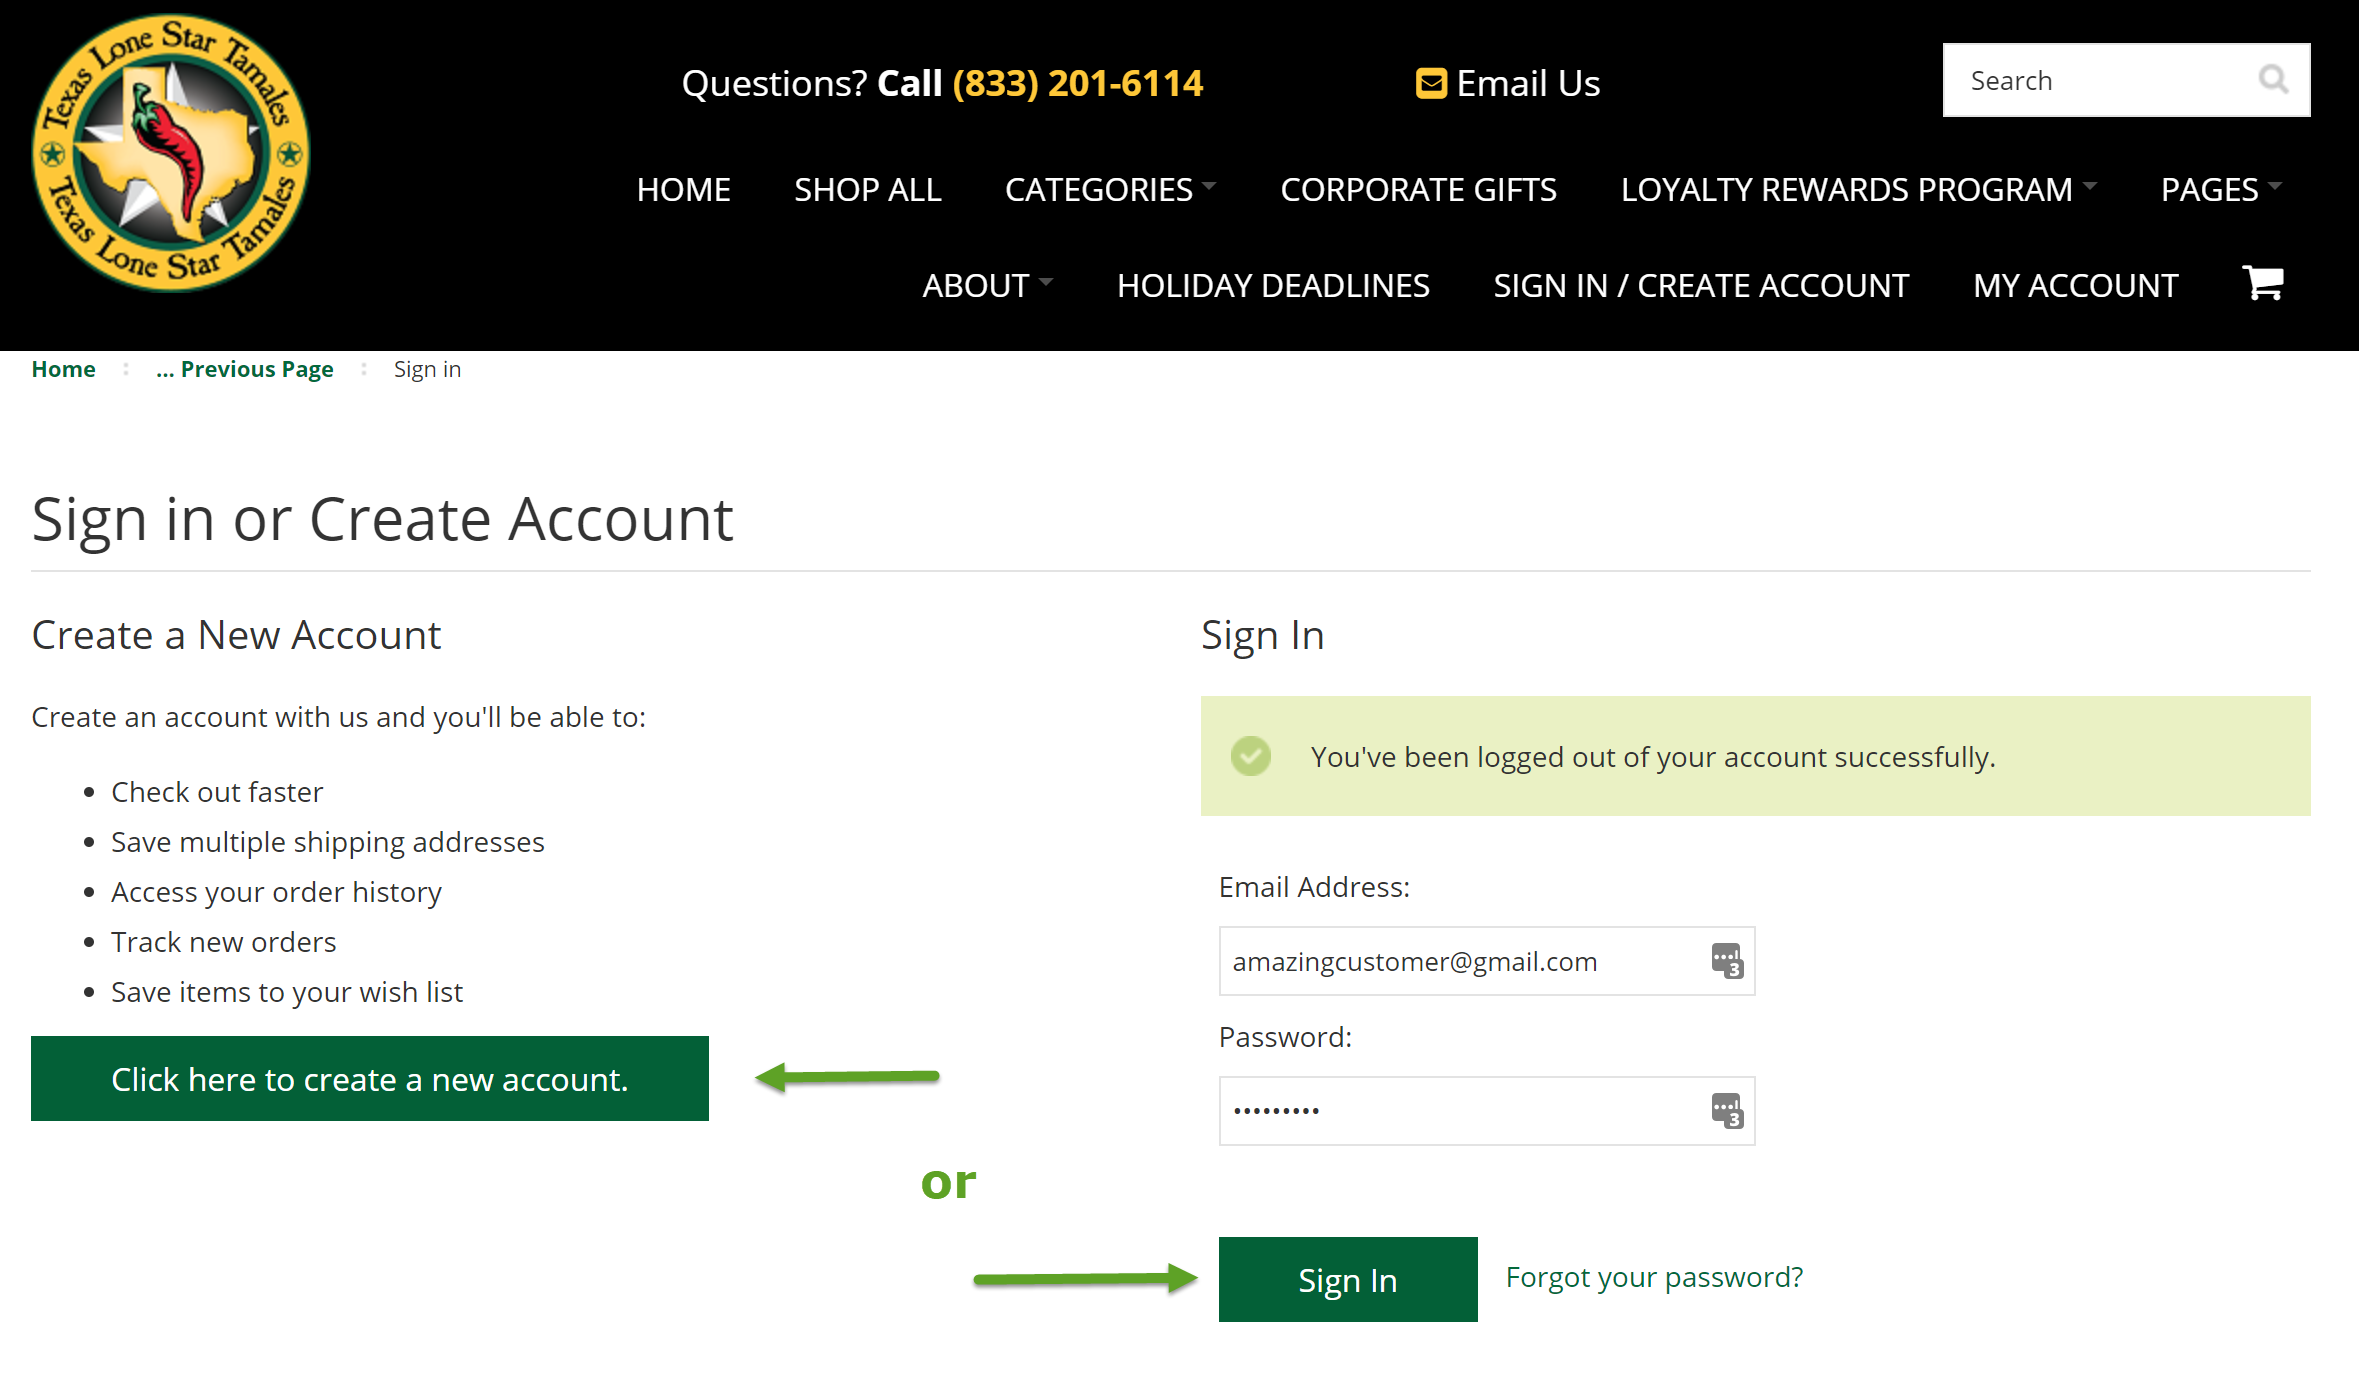 lrp-log-in-or-create-account.png